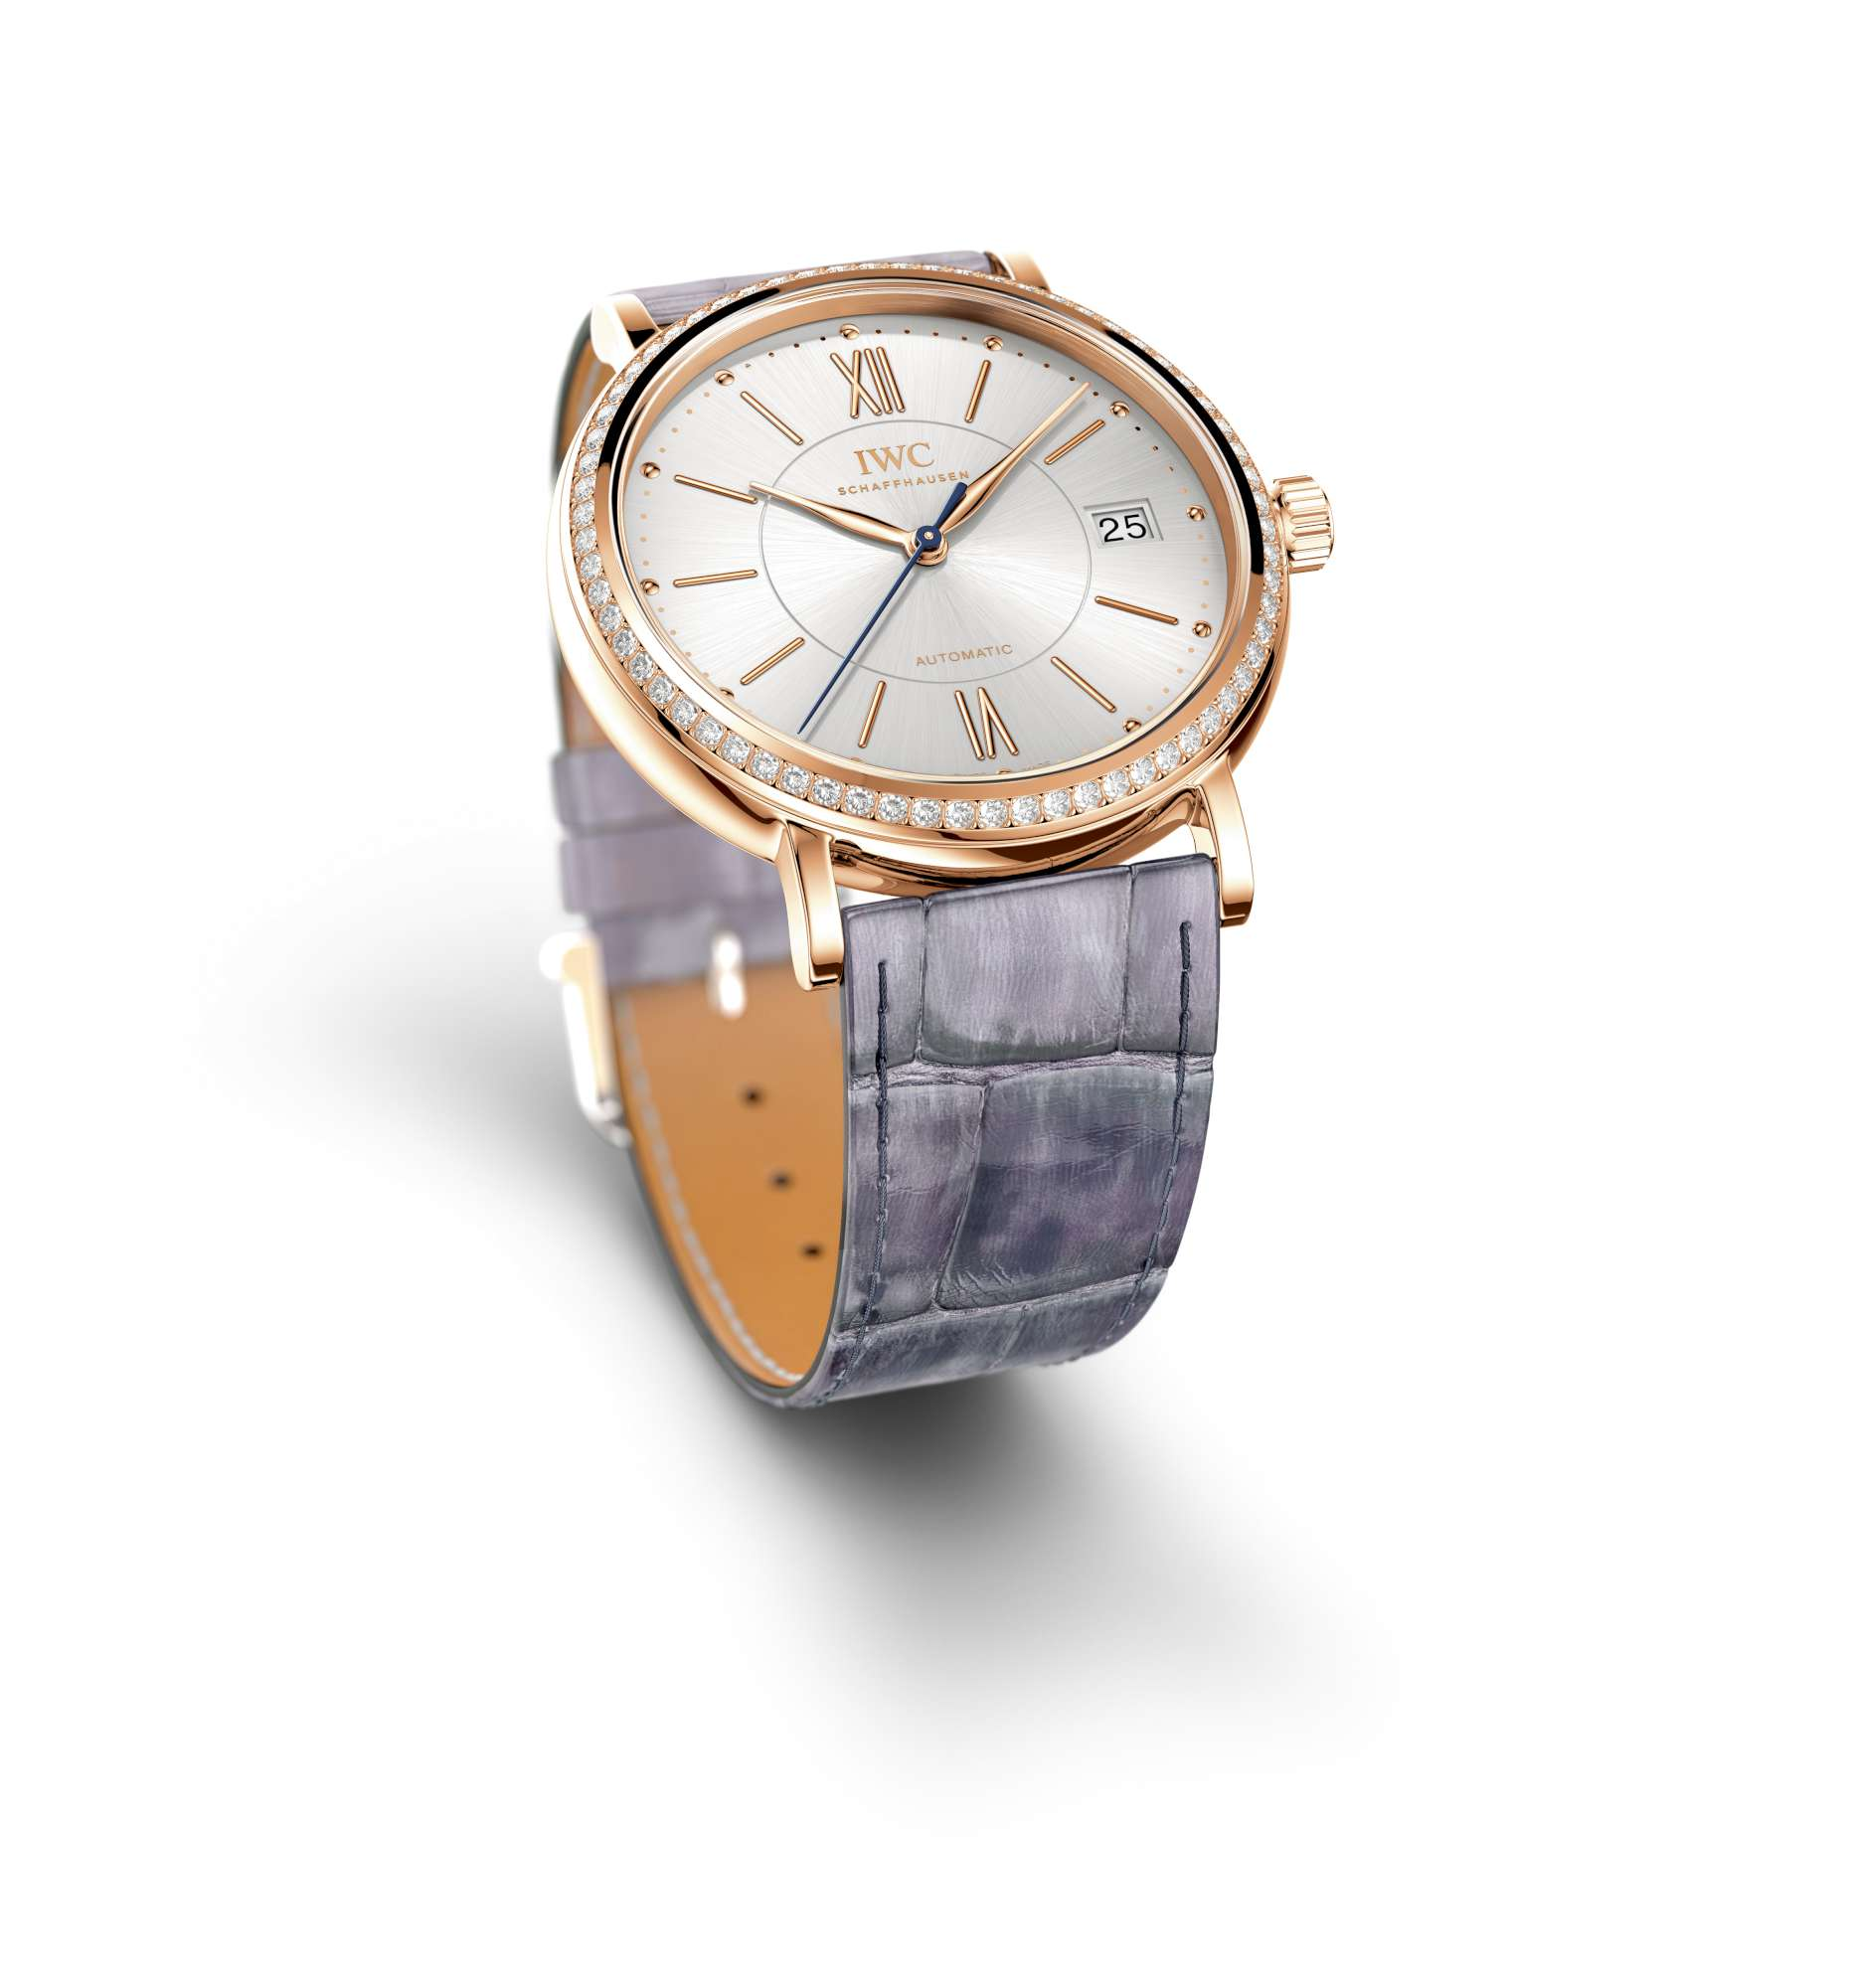 IWC Portofino Midsize Automatic , reference IW458107-2000, featuring the strap by Santoni